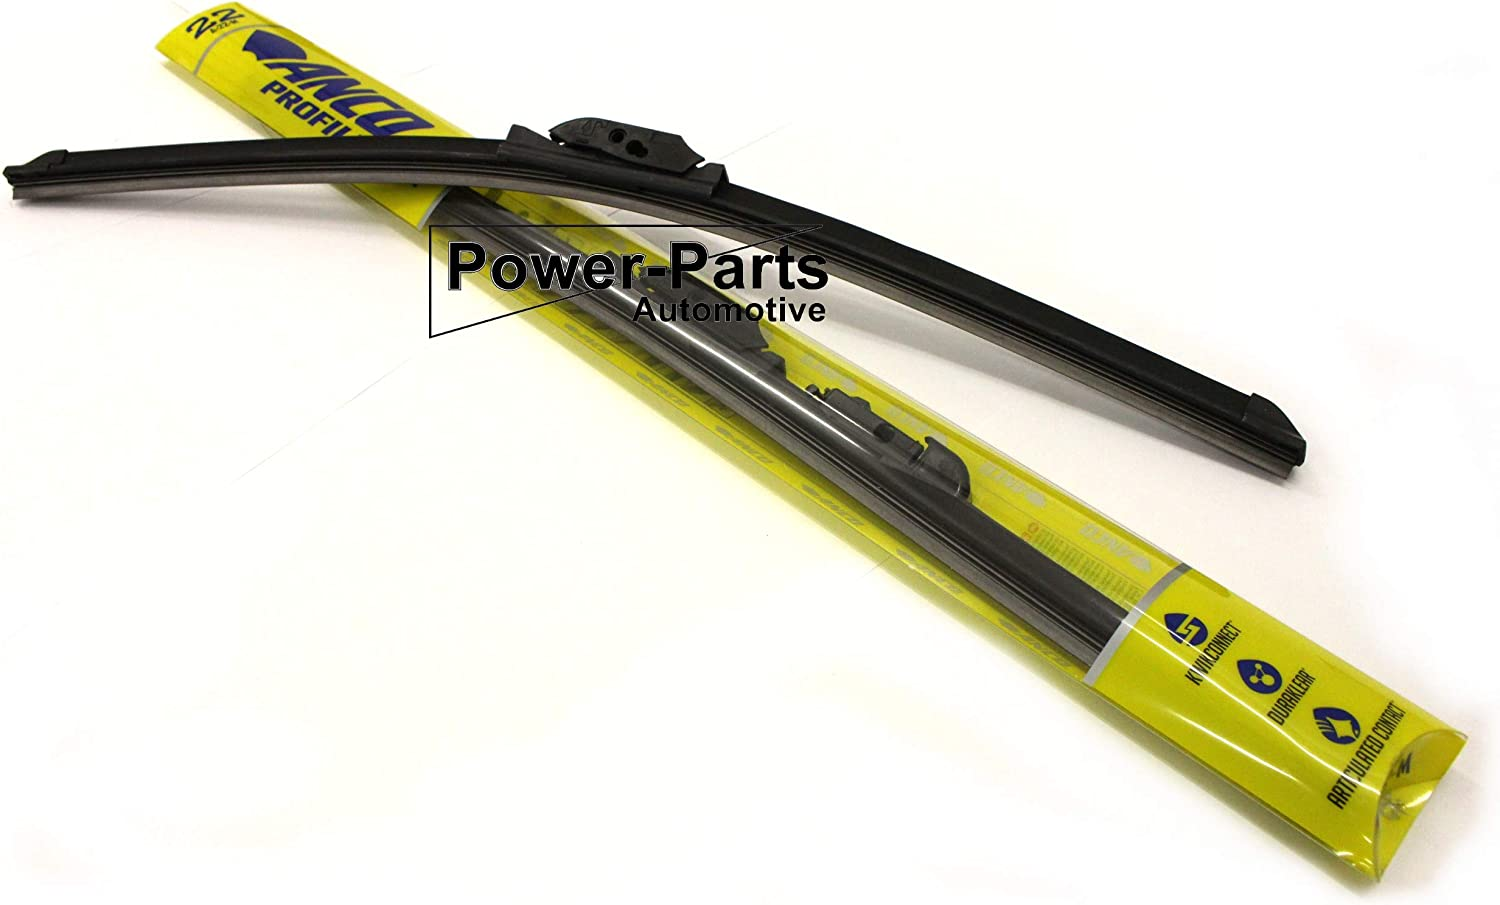 Pair of Exclusive DuraKlear Professional Windscreen Wipers